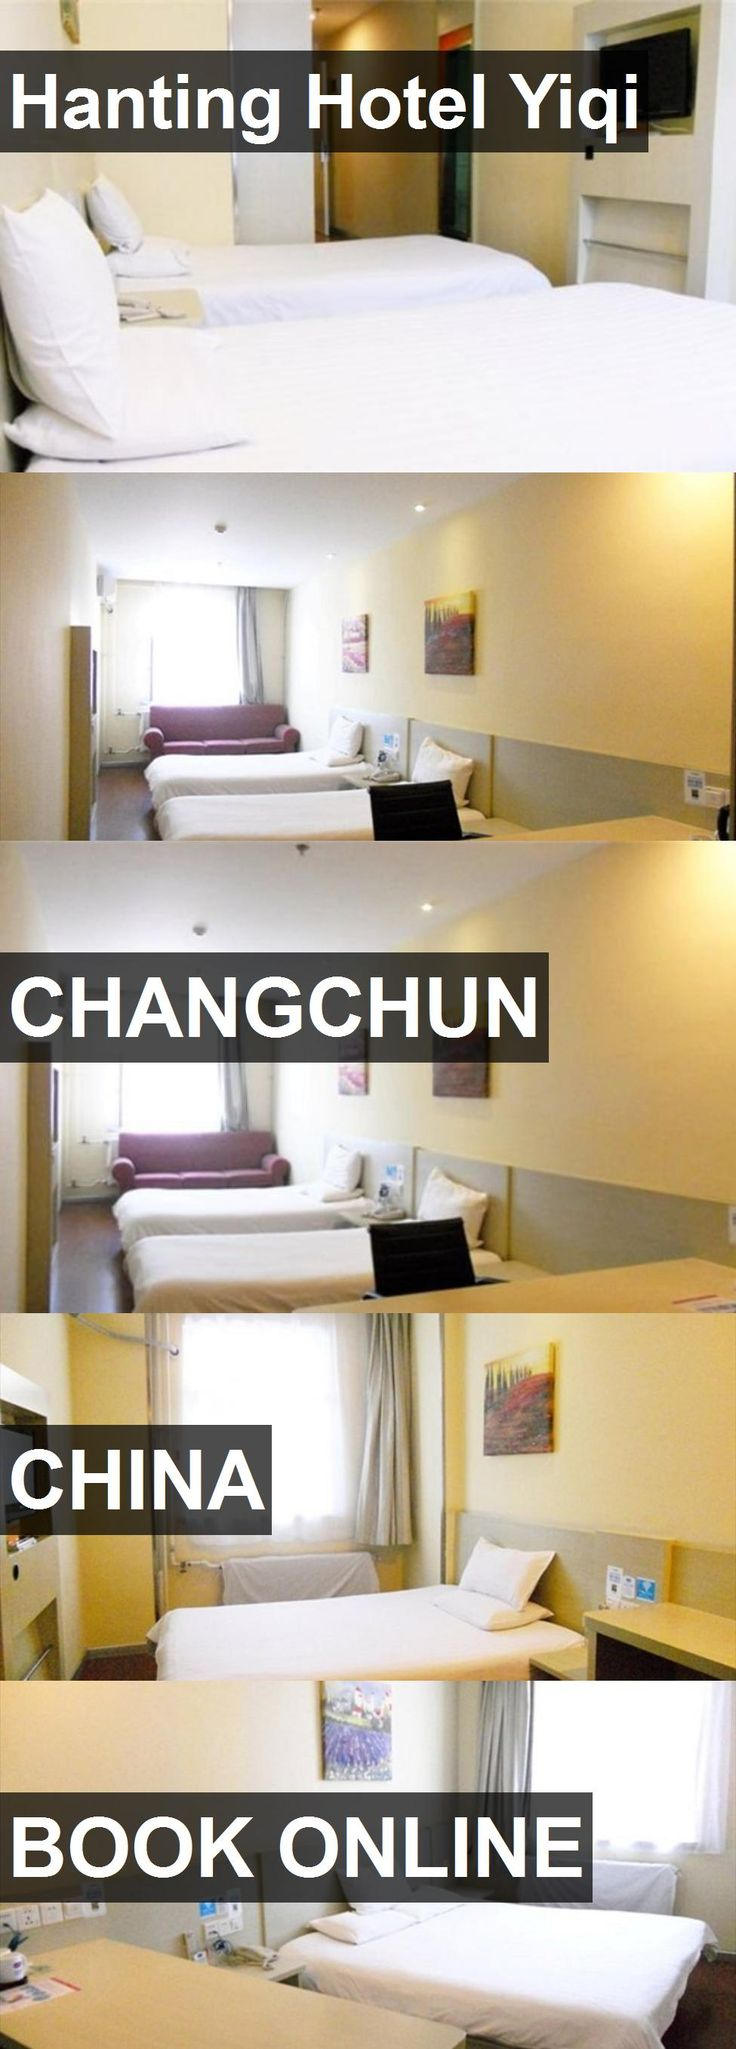 Hanting Hotel Yiqi in Changchun, China. For more information, photos, reviews and best prices please follow the link. #China #Changchun #travel #vacation #hotel